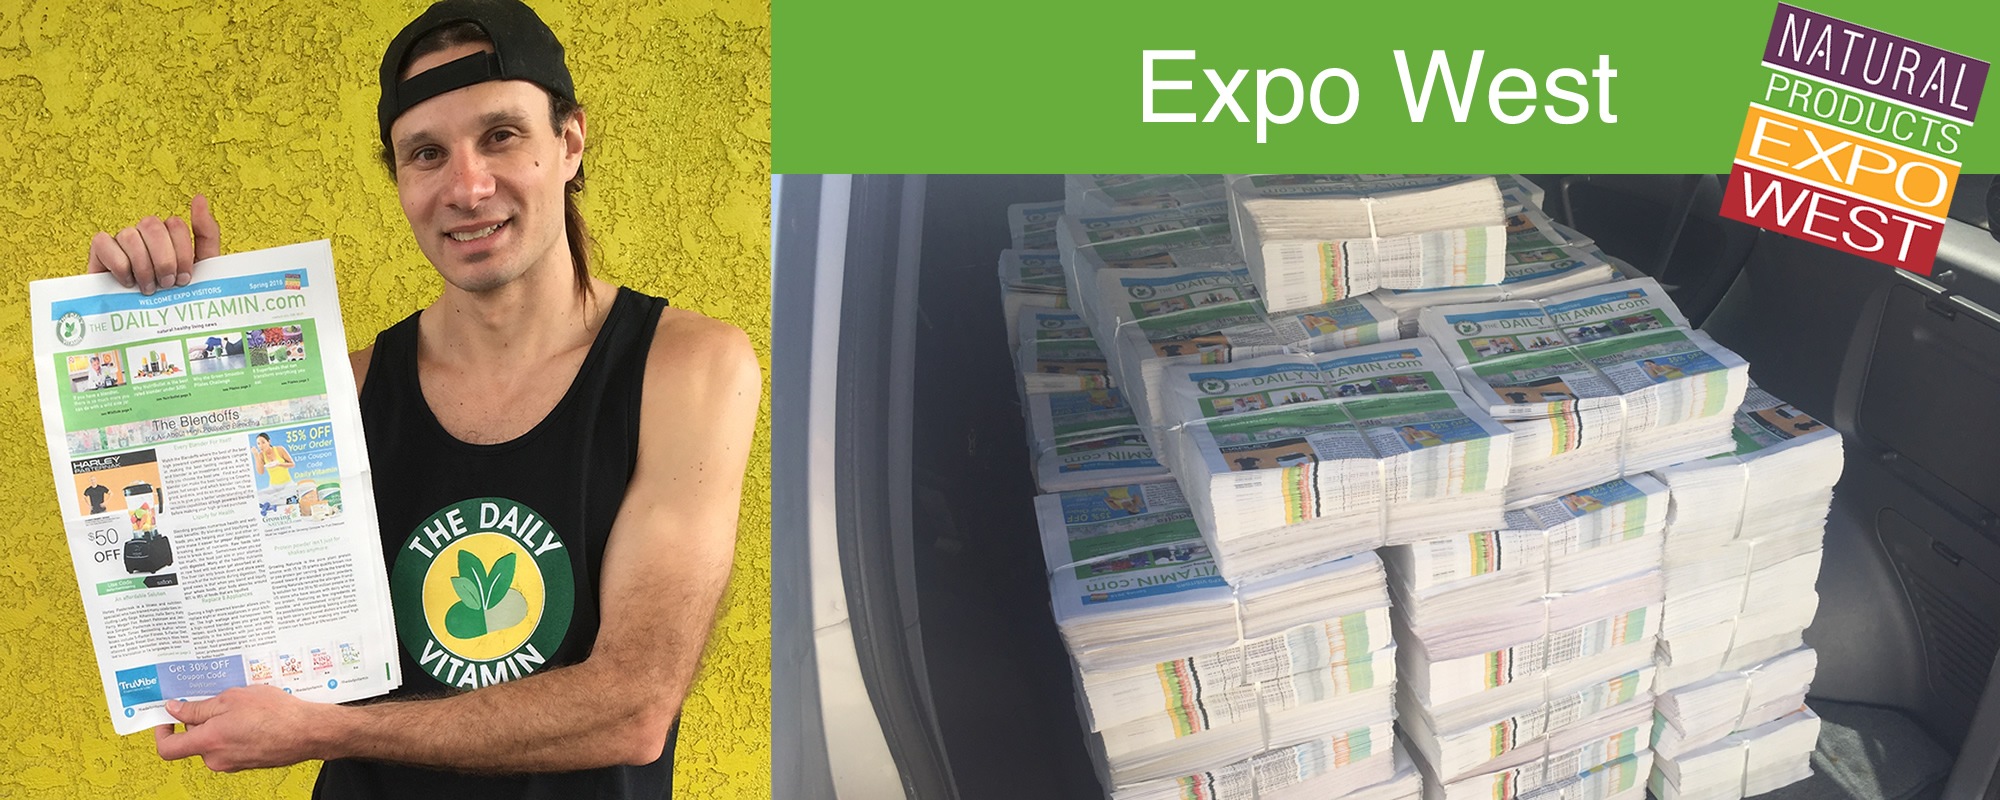 Natural Products Expo West - The Daily Vitamin Newspaper